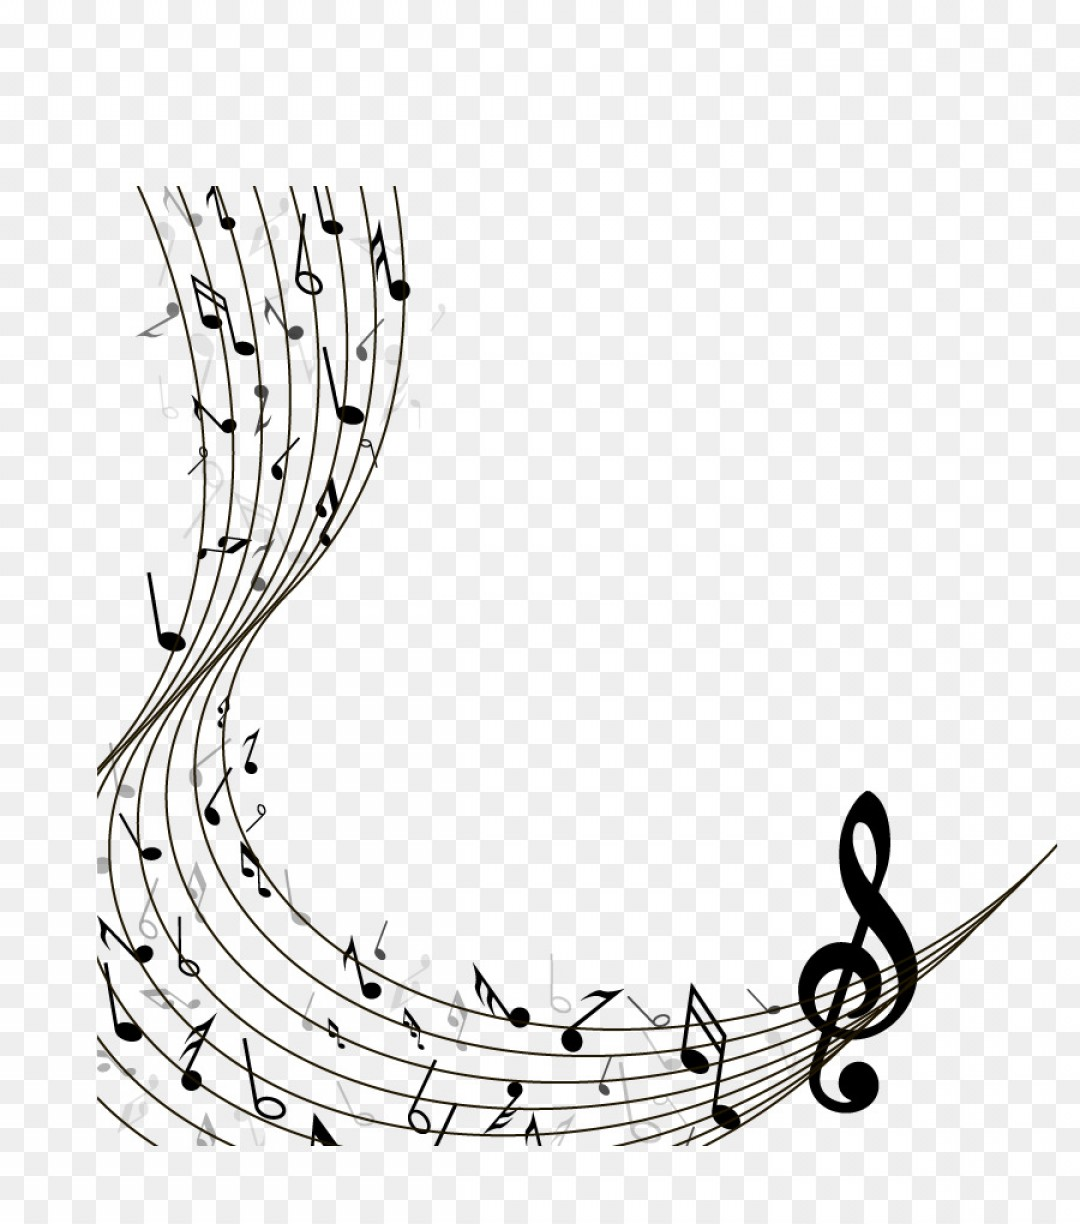 music notes on a staff png  u0026 free music notes on a staff png transparent images  3693